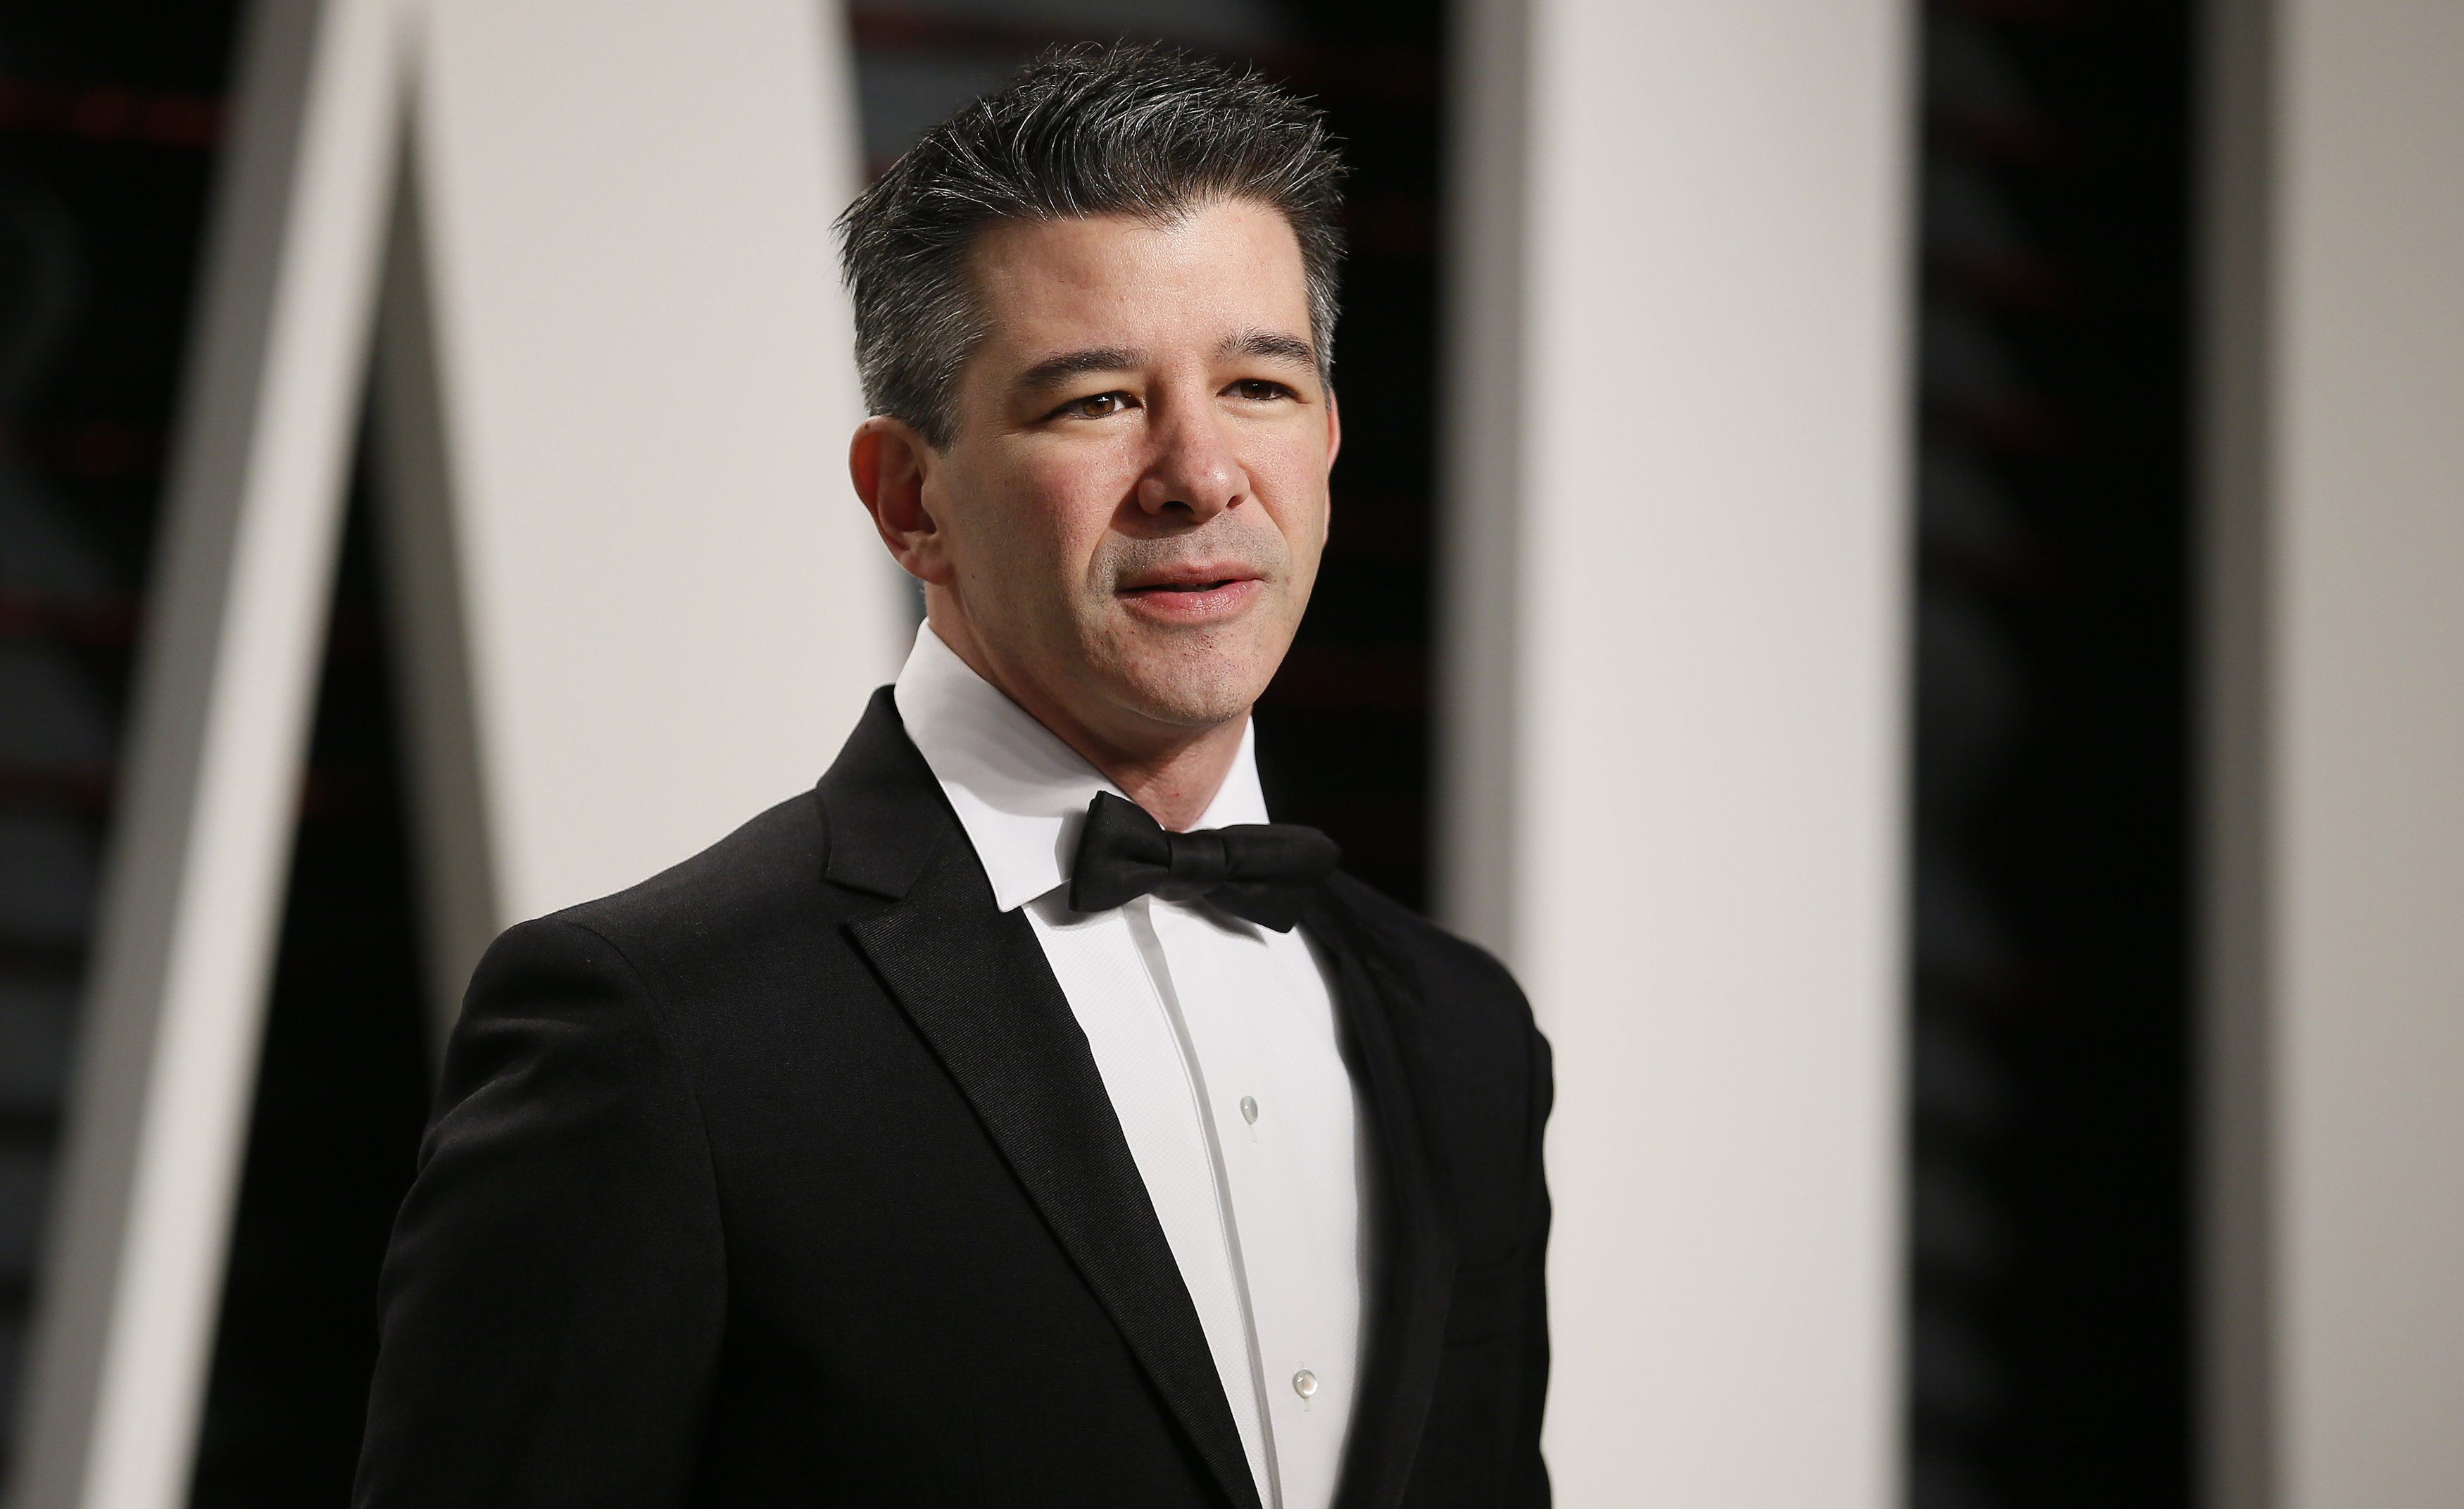 89th Academy Awards - Oscars Vanity Fair Party - Beverly Hills, California, U.S. - 26/02/17 – Uber co-founder Travis Kalanick. REUTERS/Danny Moloshok - RTS10HMR